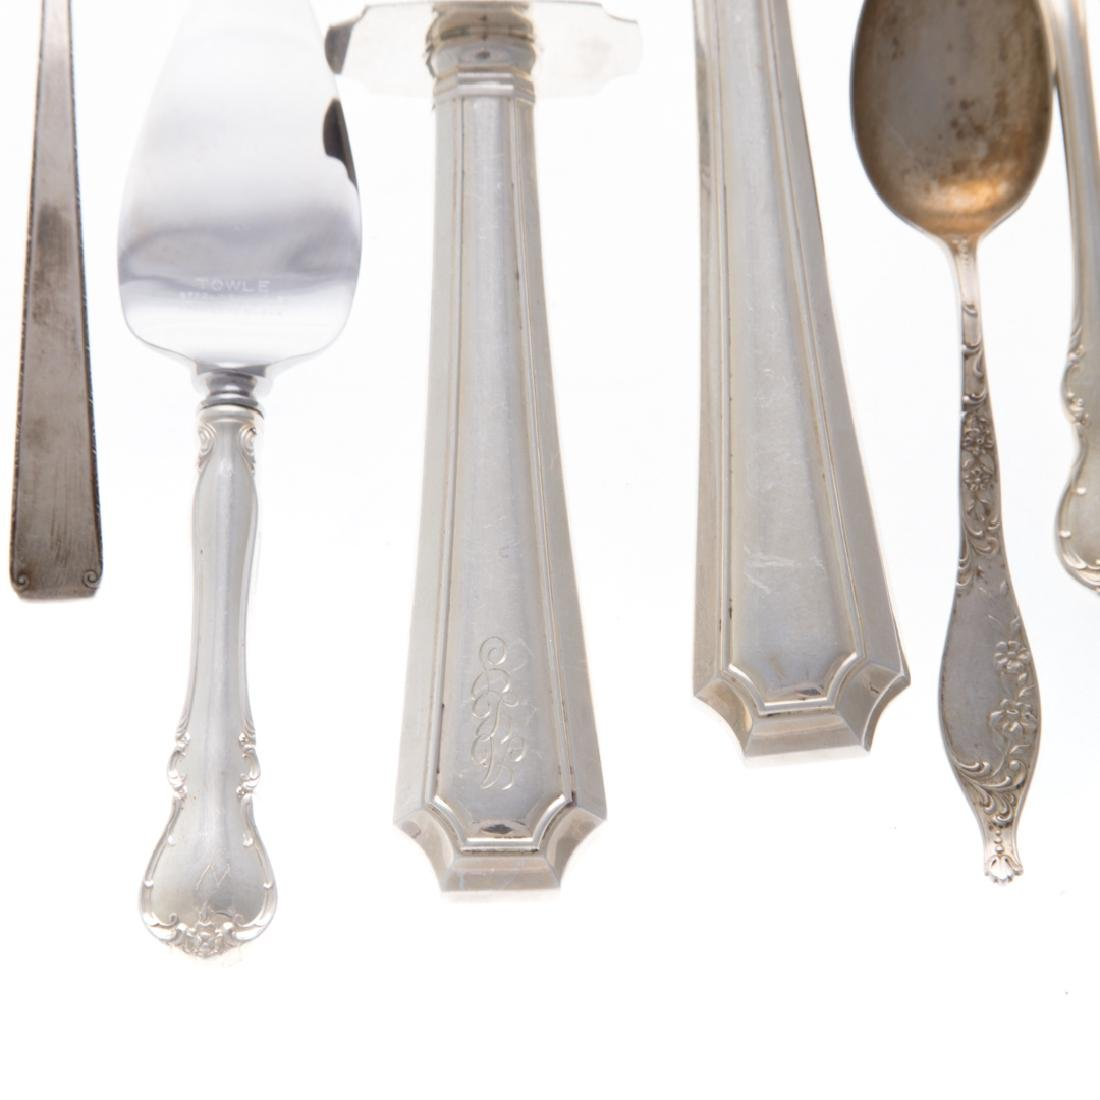 Collection of Gorham and Towle sterling flatware - 2